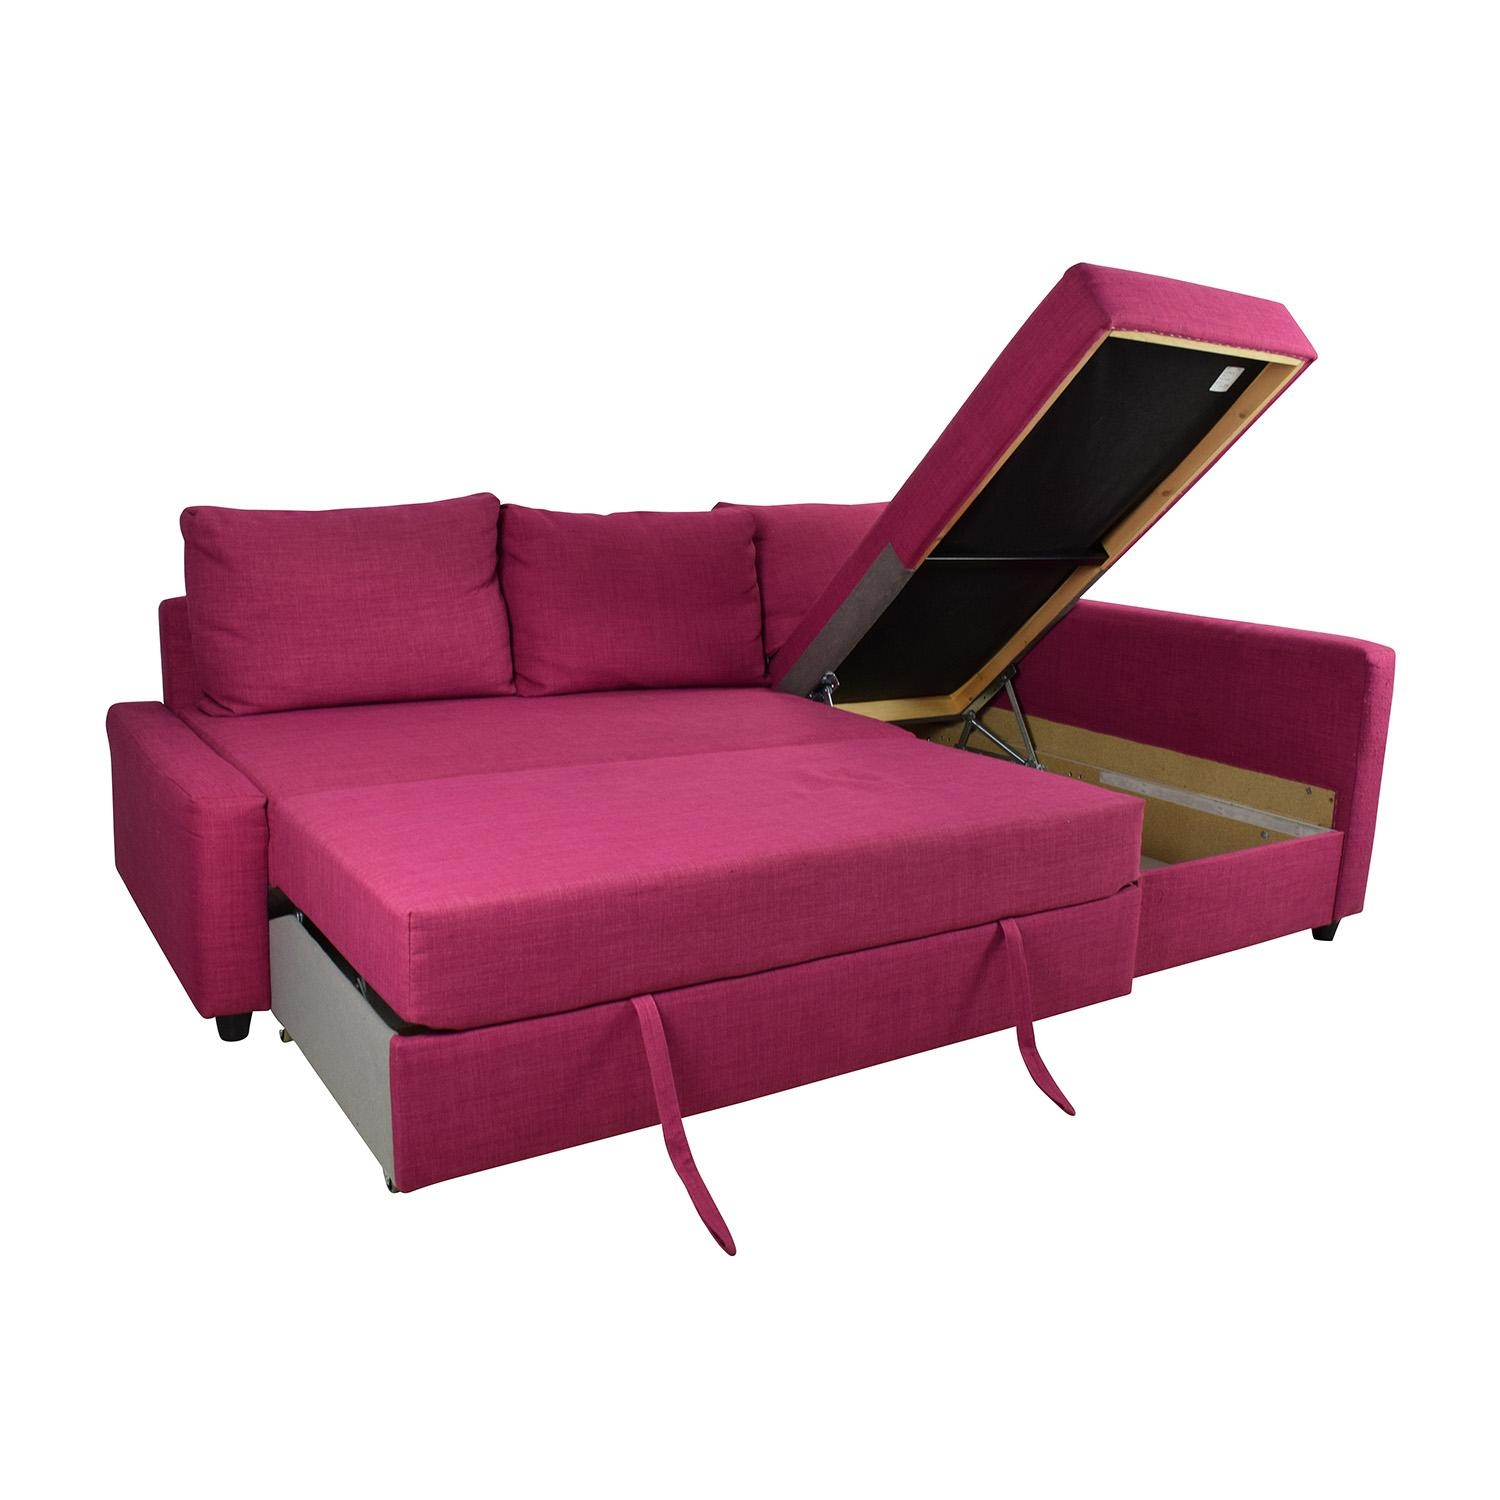 66% Off - Ikea Ikea Friheten Pink Sleeper Sofa / Sofas pertaining to Sleeper Sofa Sectional Ikea